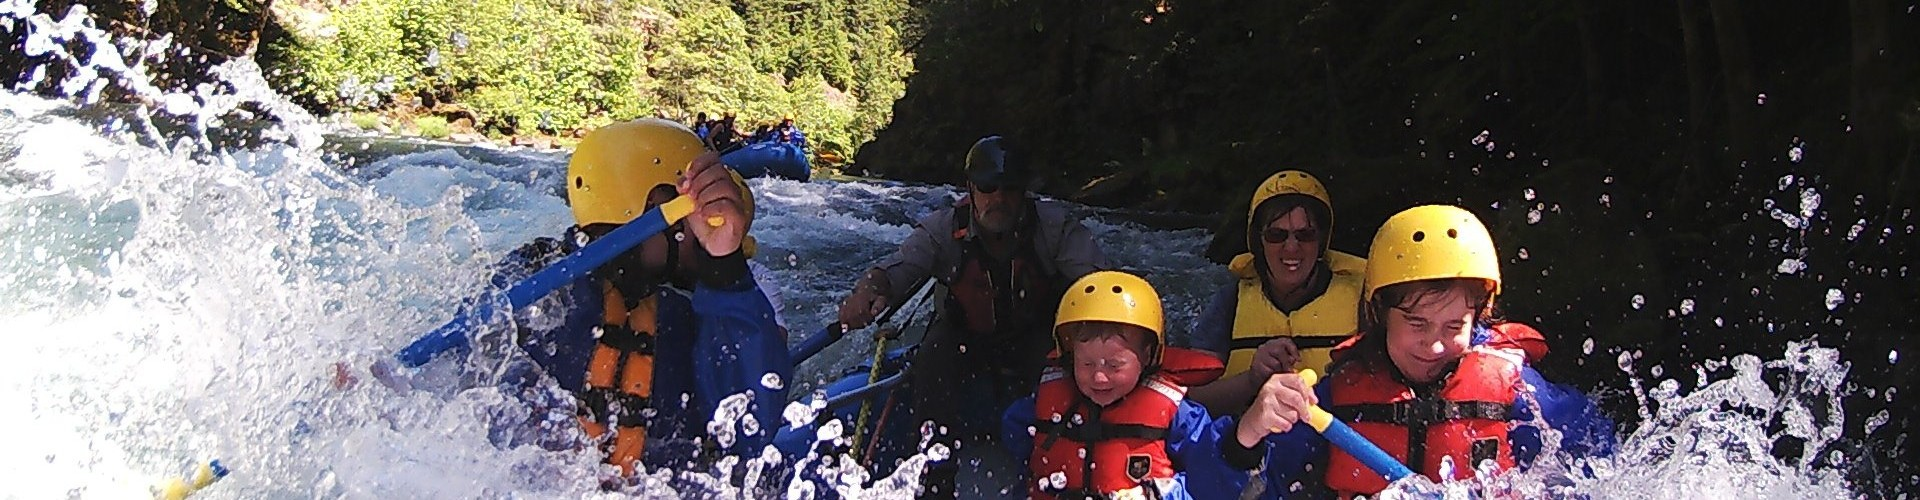 Family fun At North Umpqua Outfitters